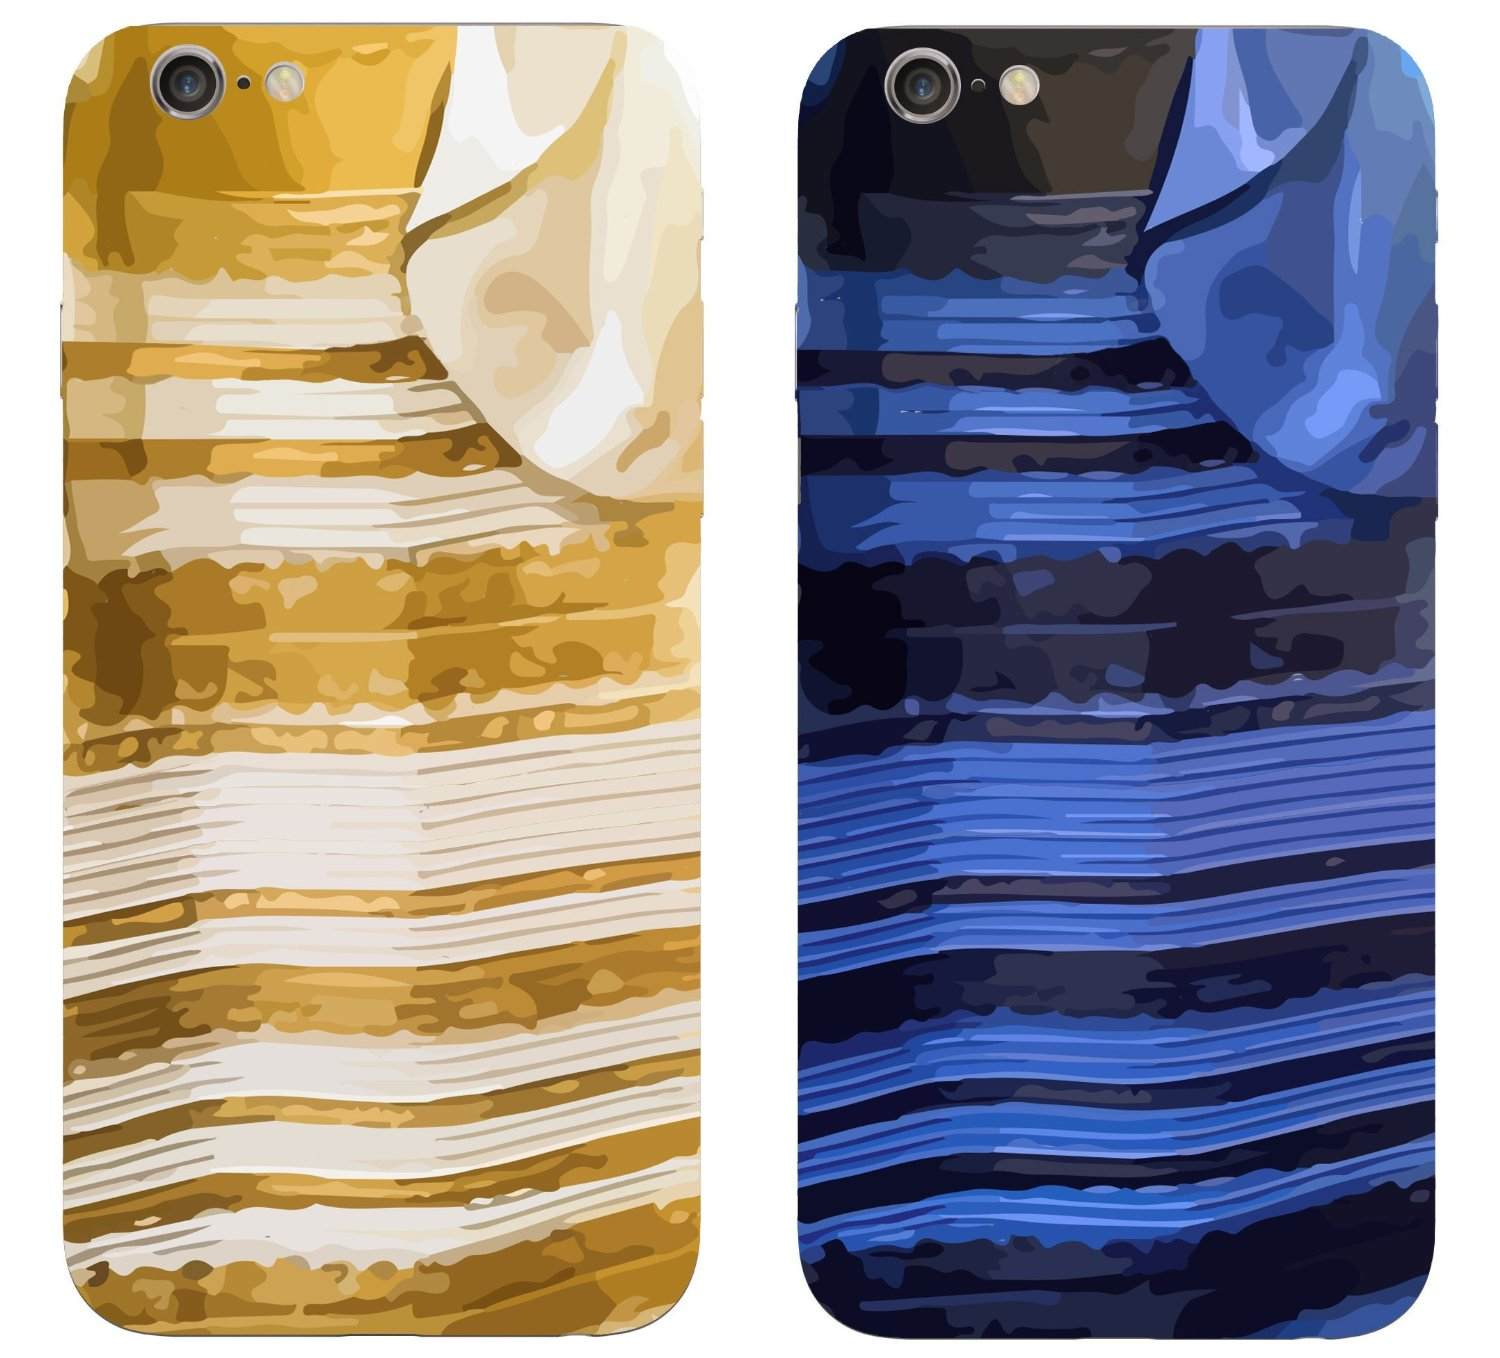 thedress-iphone-case.jpg